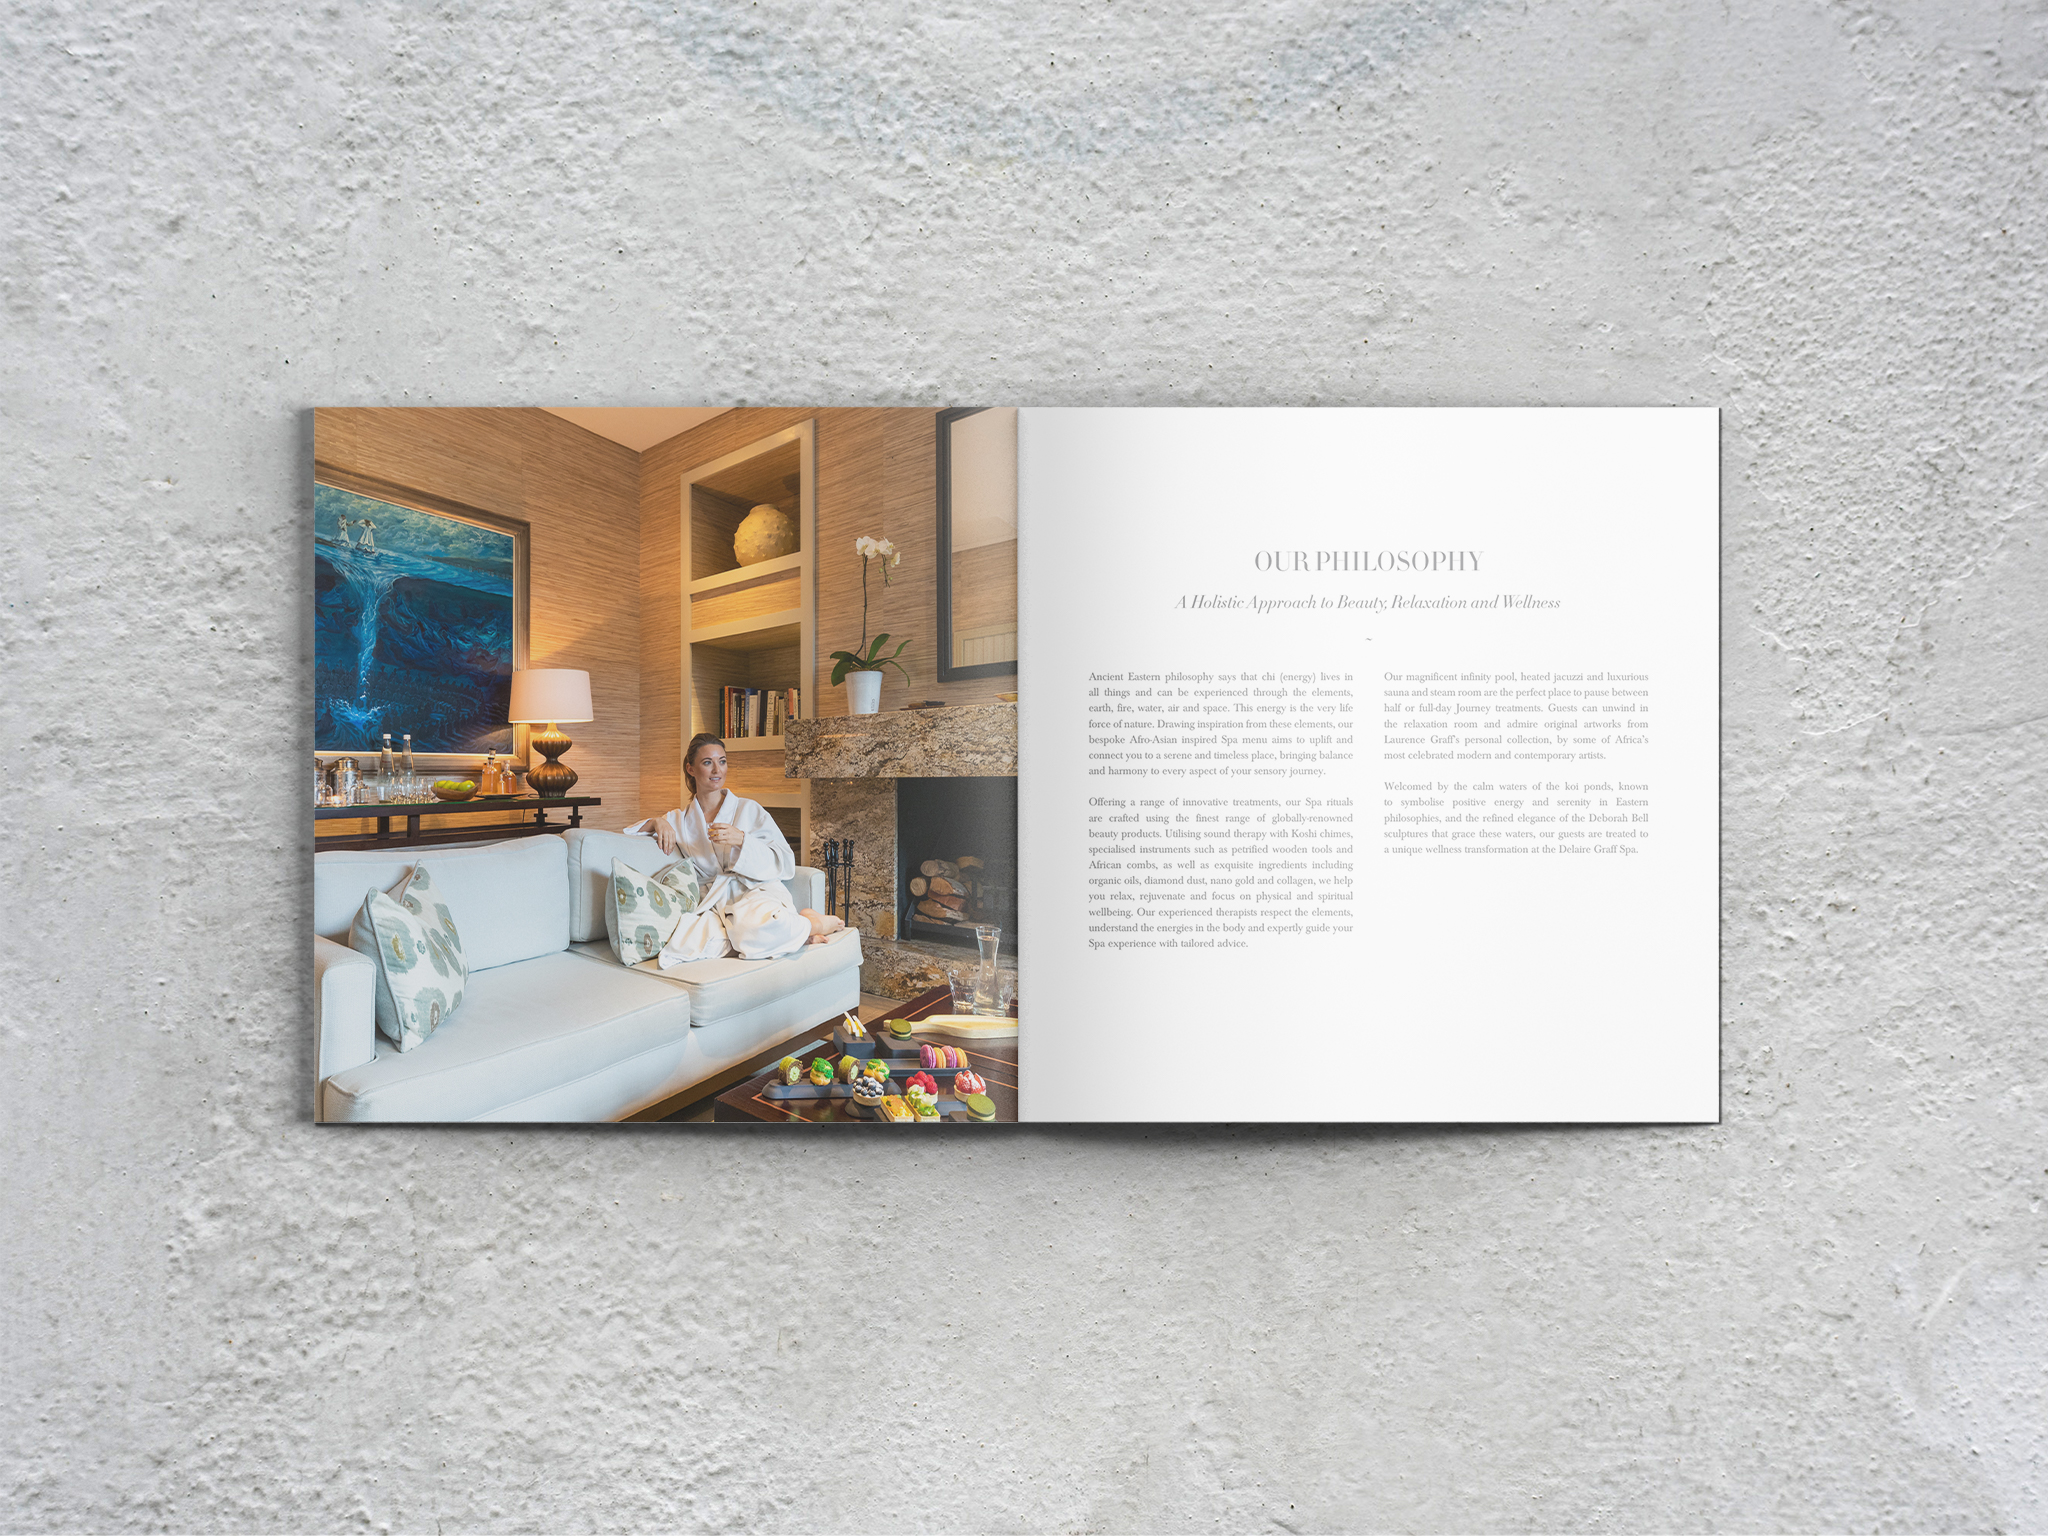 Delaire Graff Spa wellness menu explaining the spa philosophy with relaxation room image of girl enjoying high tea